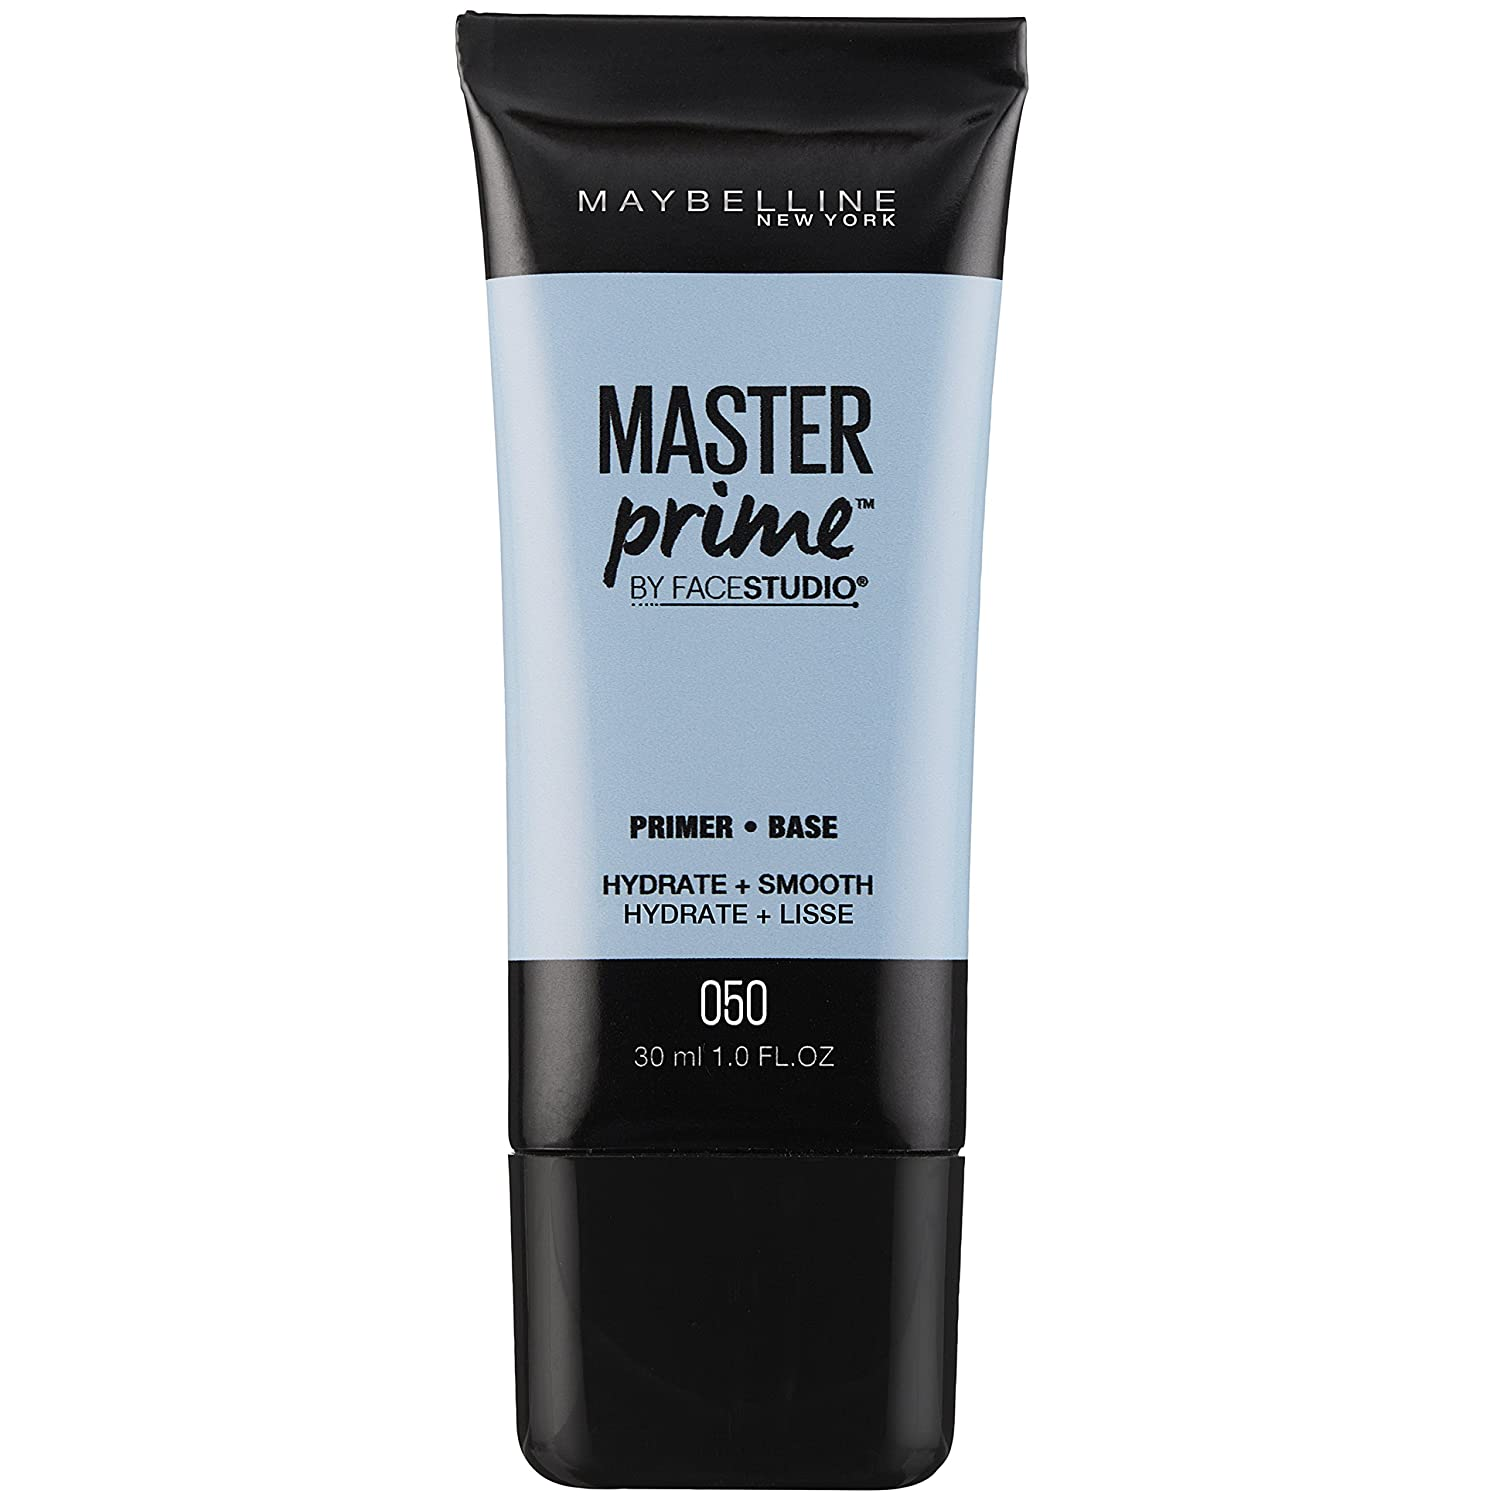 Maybelline New York Facestudio Master Prime Primer, Hydrate + Smooth, 1 fl. oz.